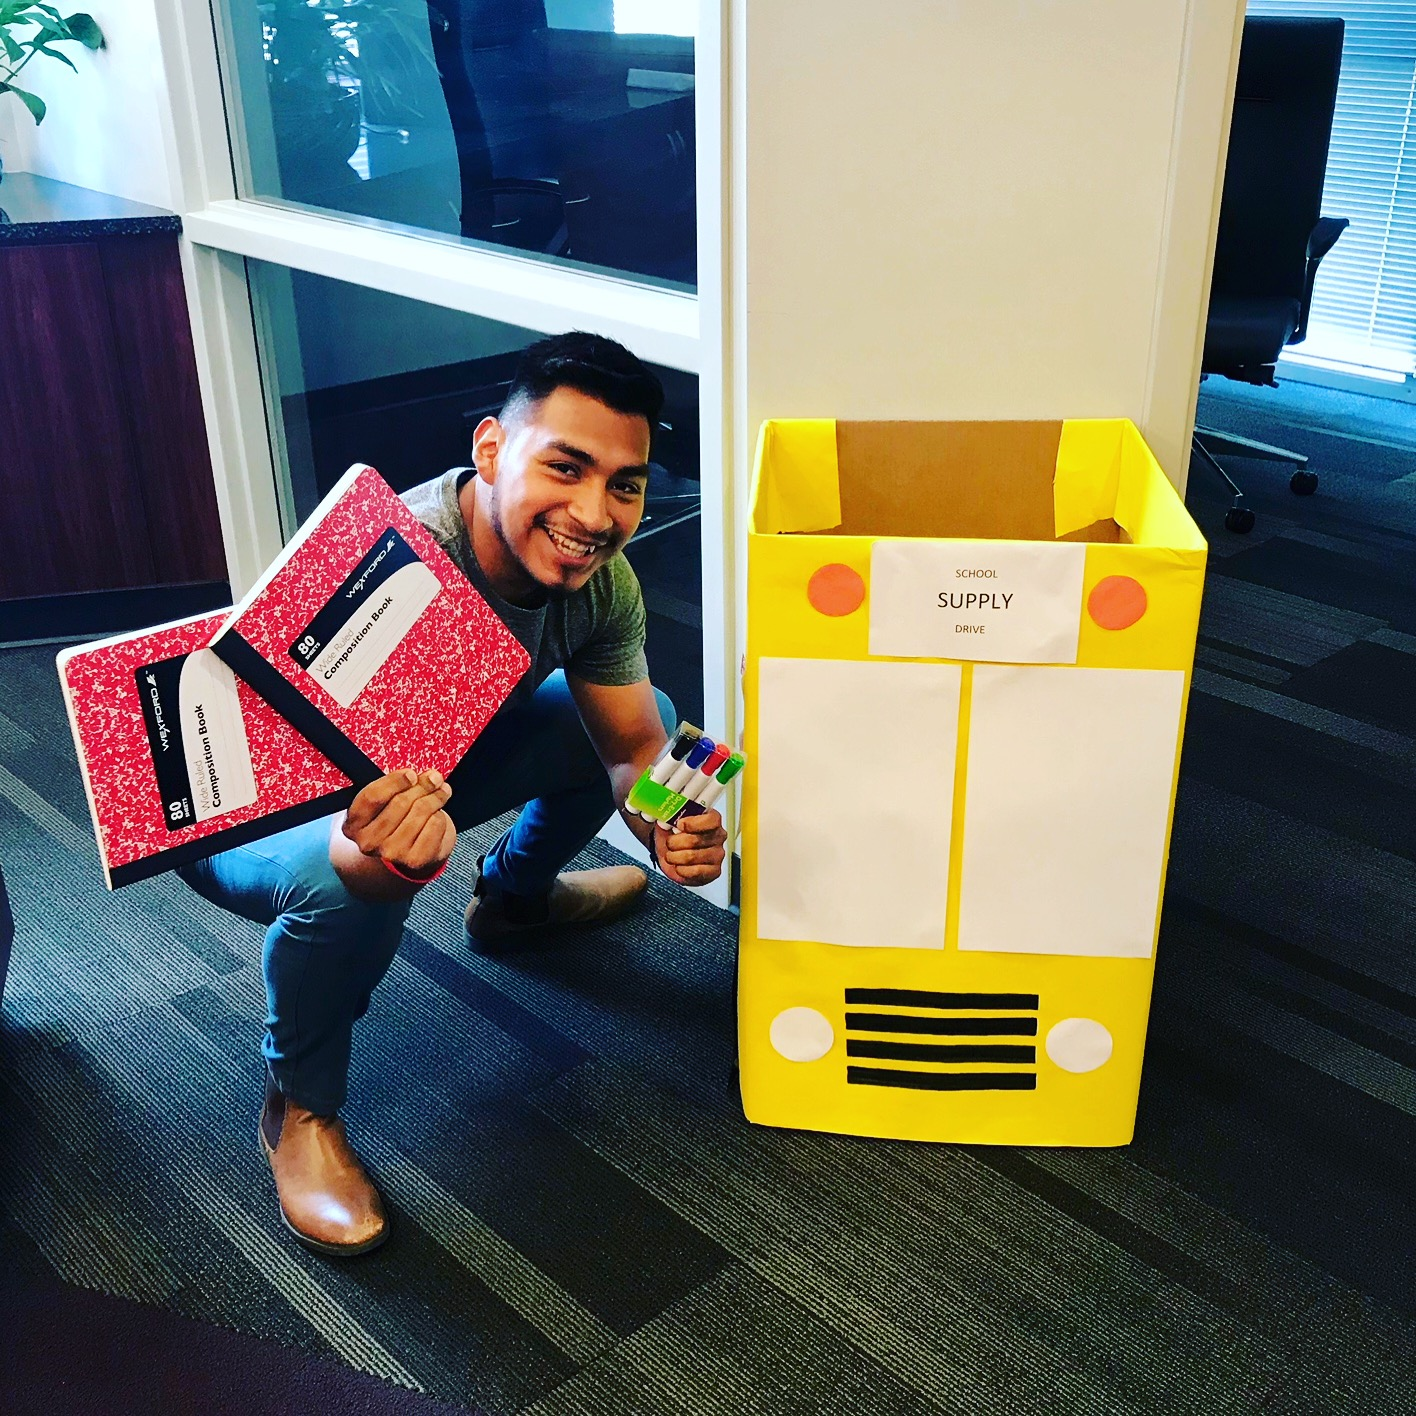 A smiling man holding pens and notebooks in front of a school donation bin.